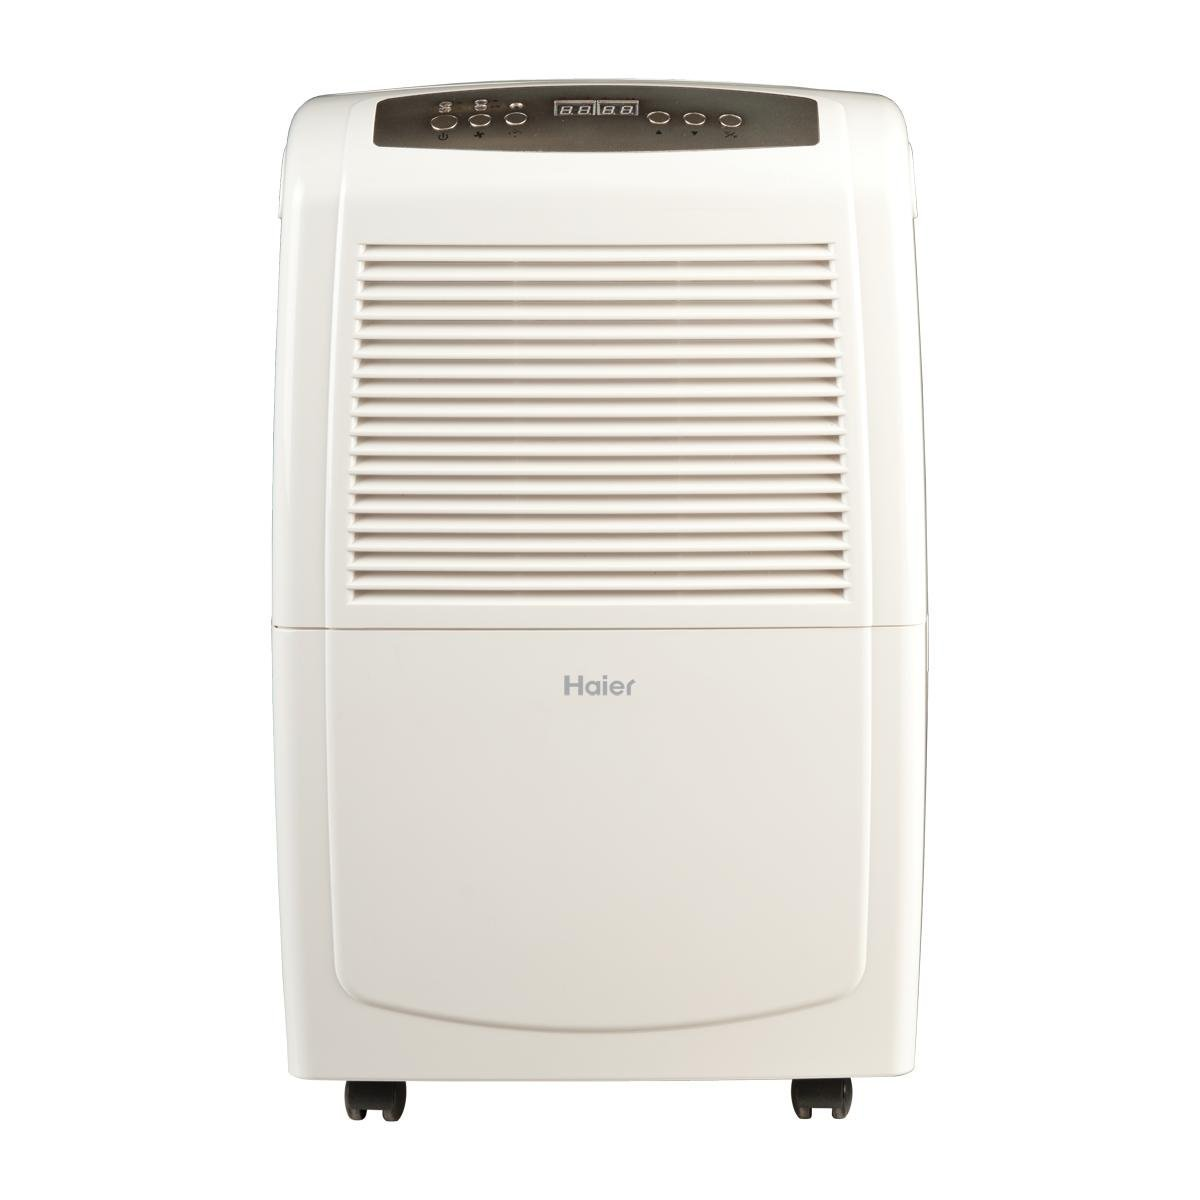 Haier Dehumidifier Reviews, Ratings, Consumer Report